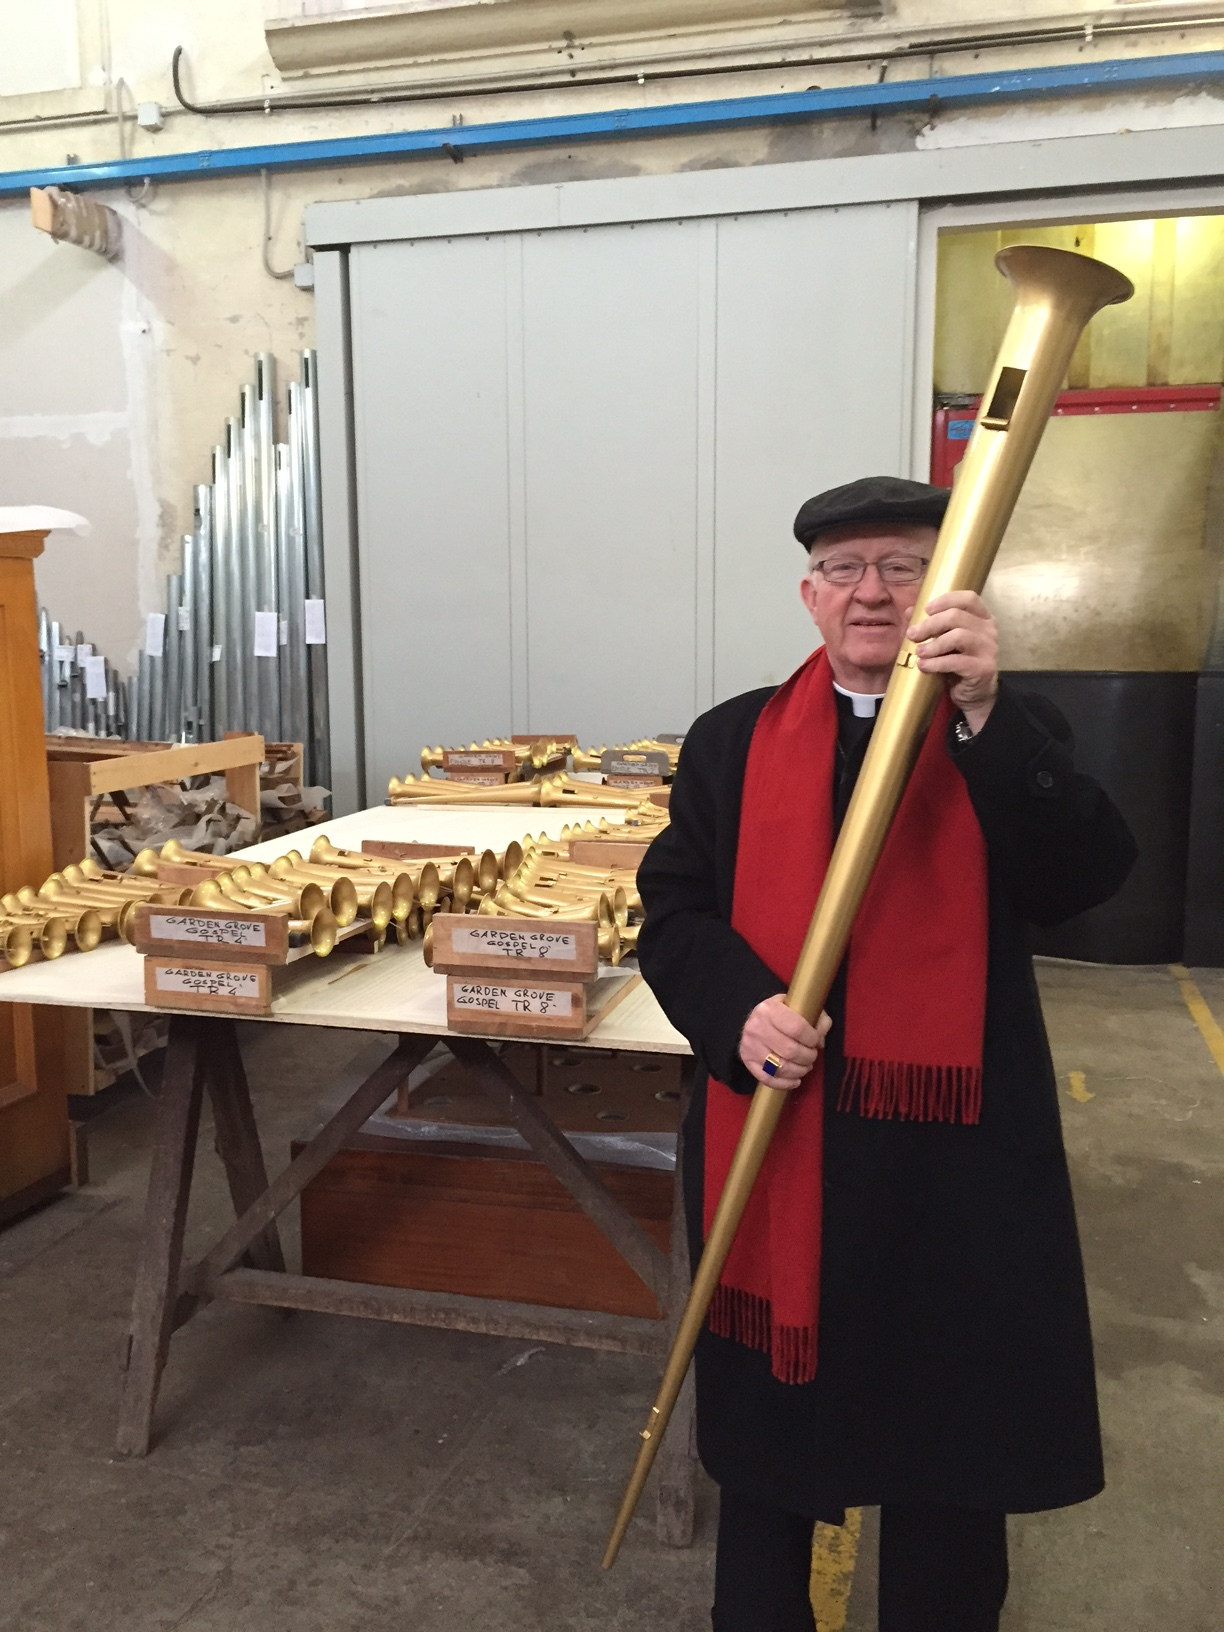 Bishop Vann at the Fratelli Rufatti factory in Padua, Italy